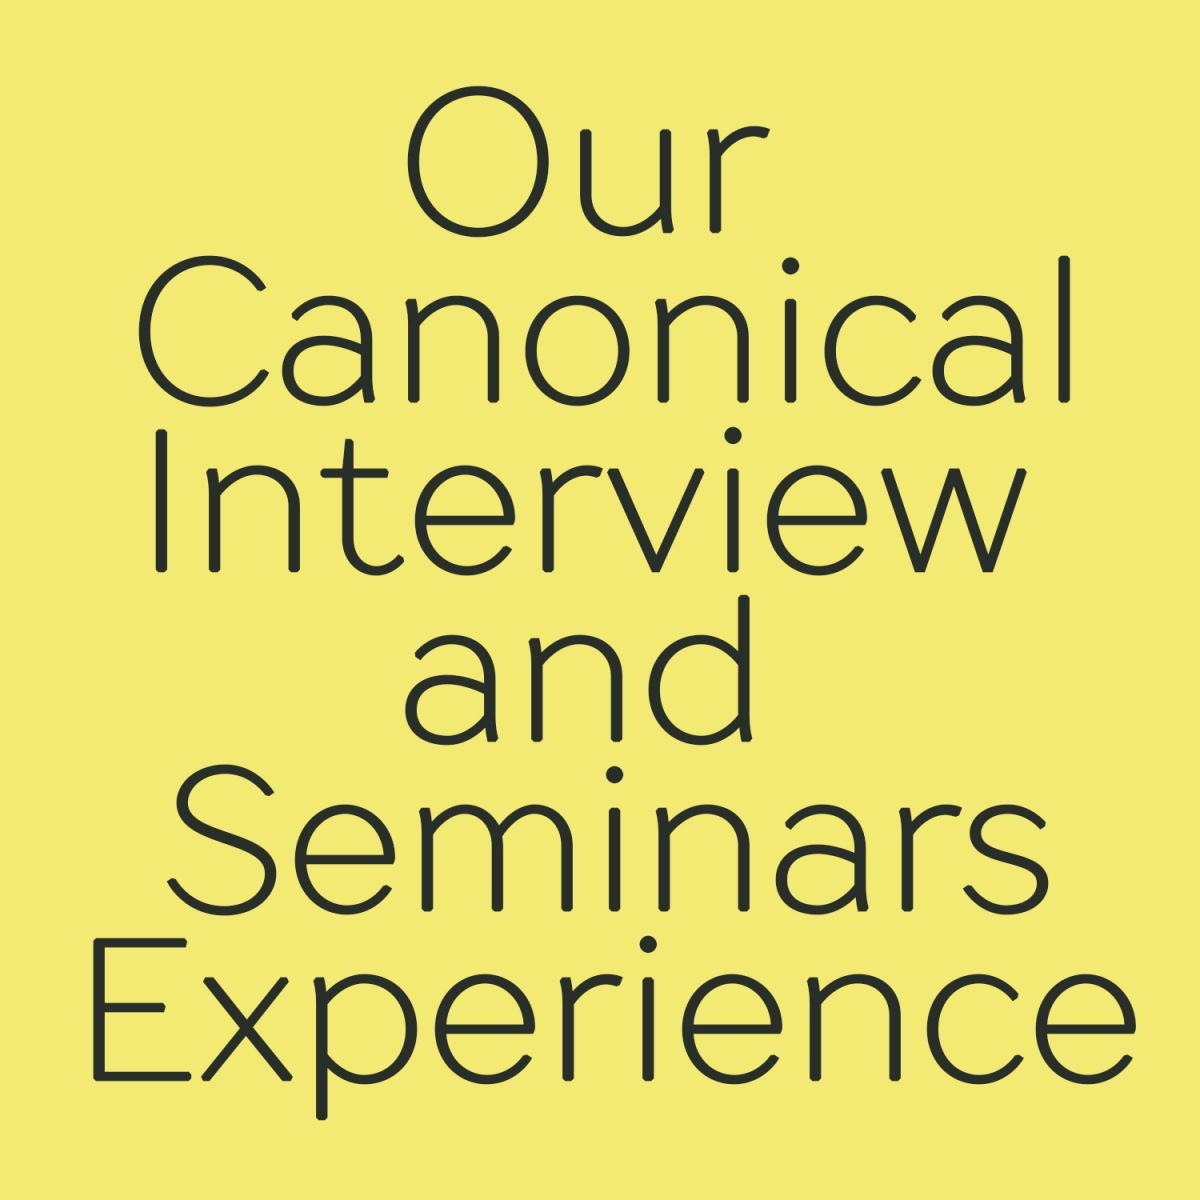 Our Canonical Interview and Seminars Experience